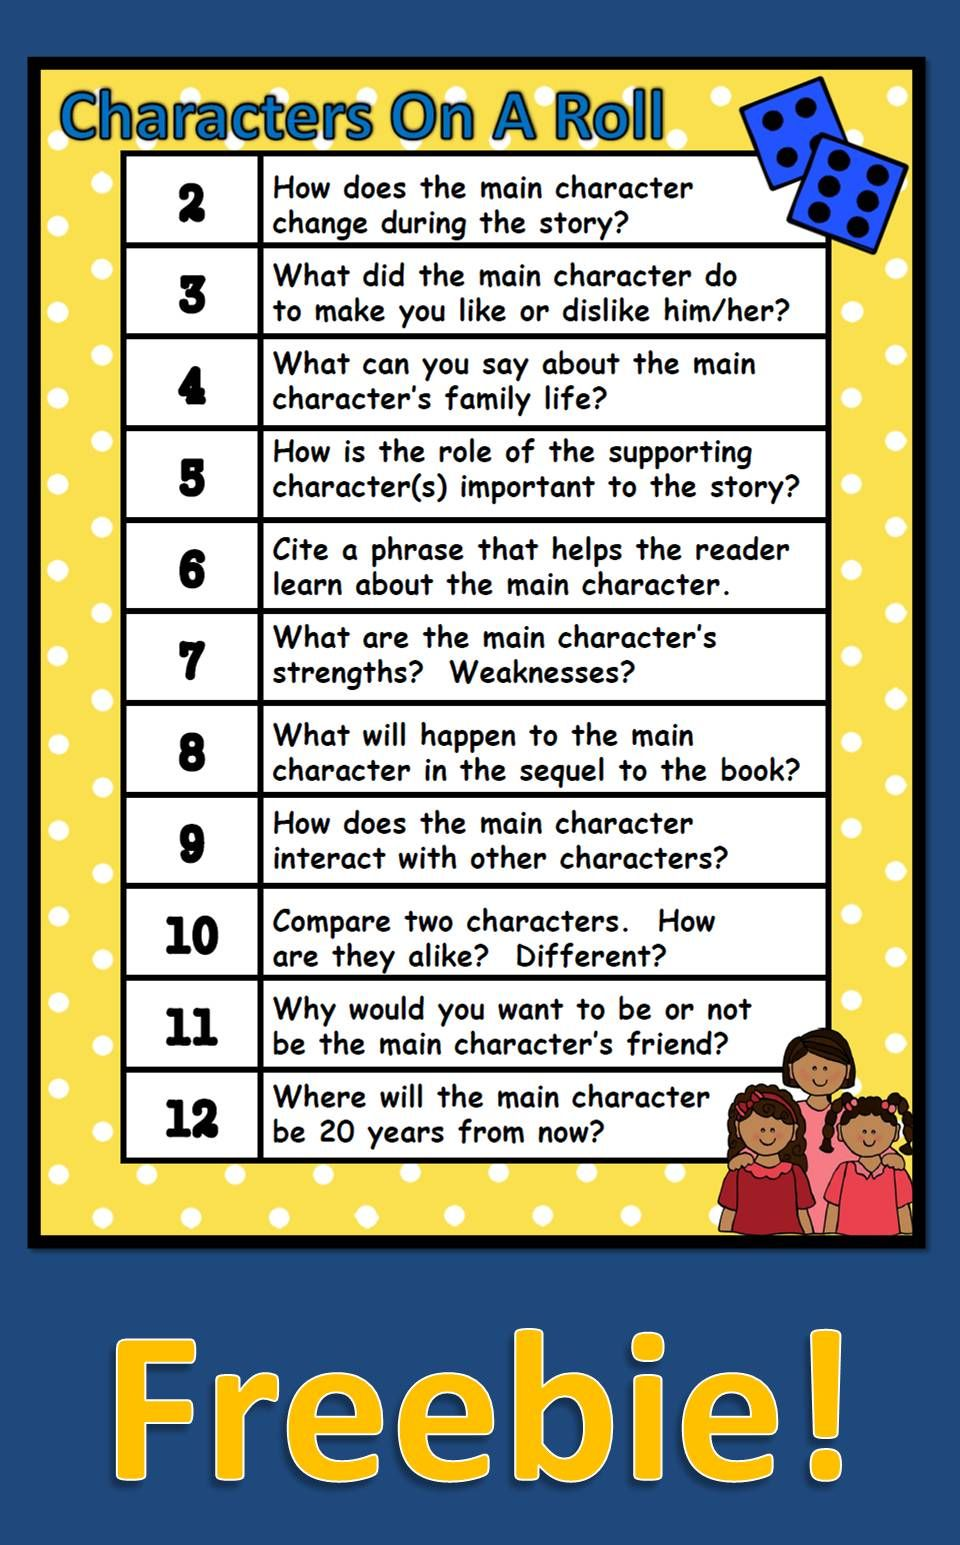 I Love To Use This During Guided Reading Or With Pairs Of Students